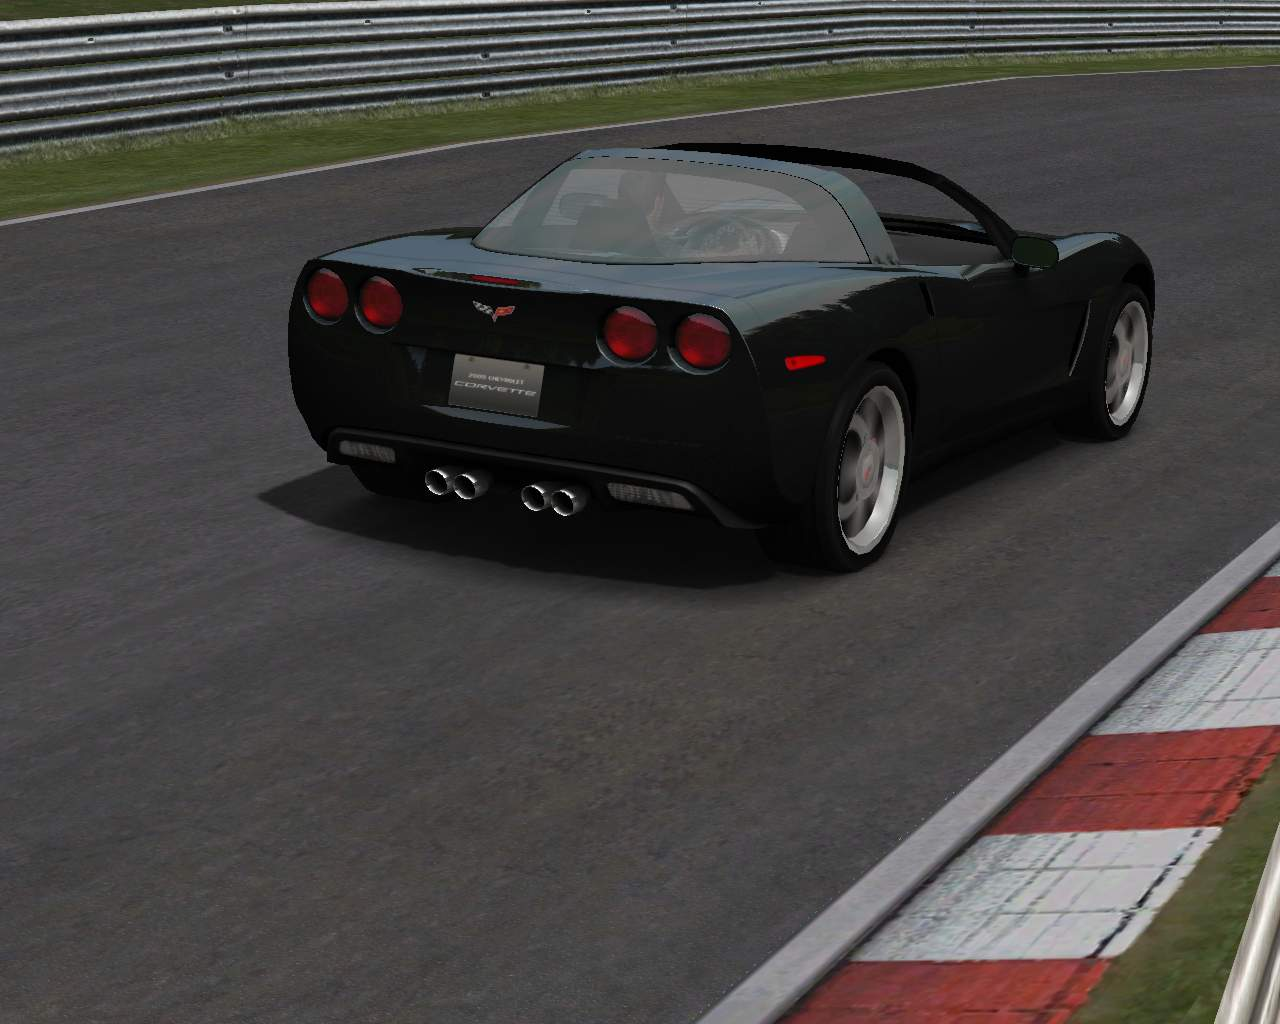 LFS Forum - Version 2 of the rFactor car you might want to try is out